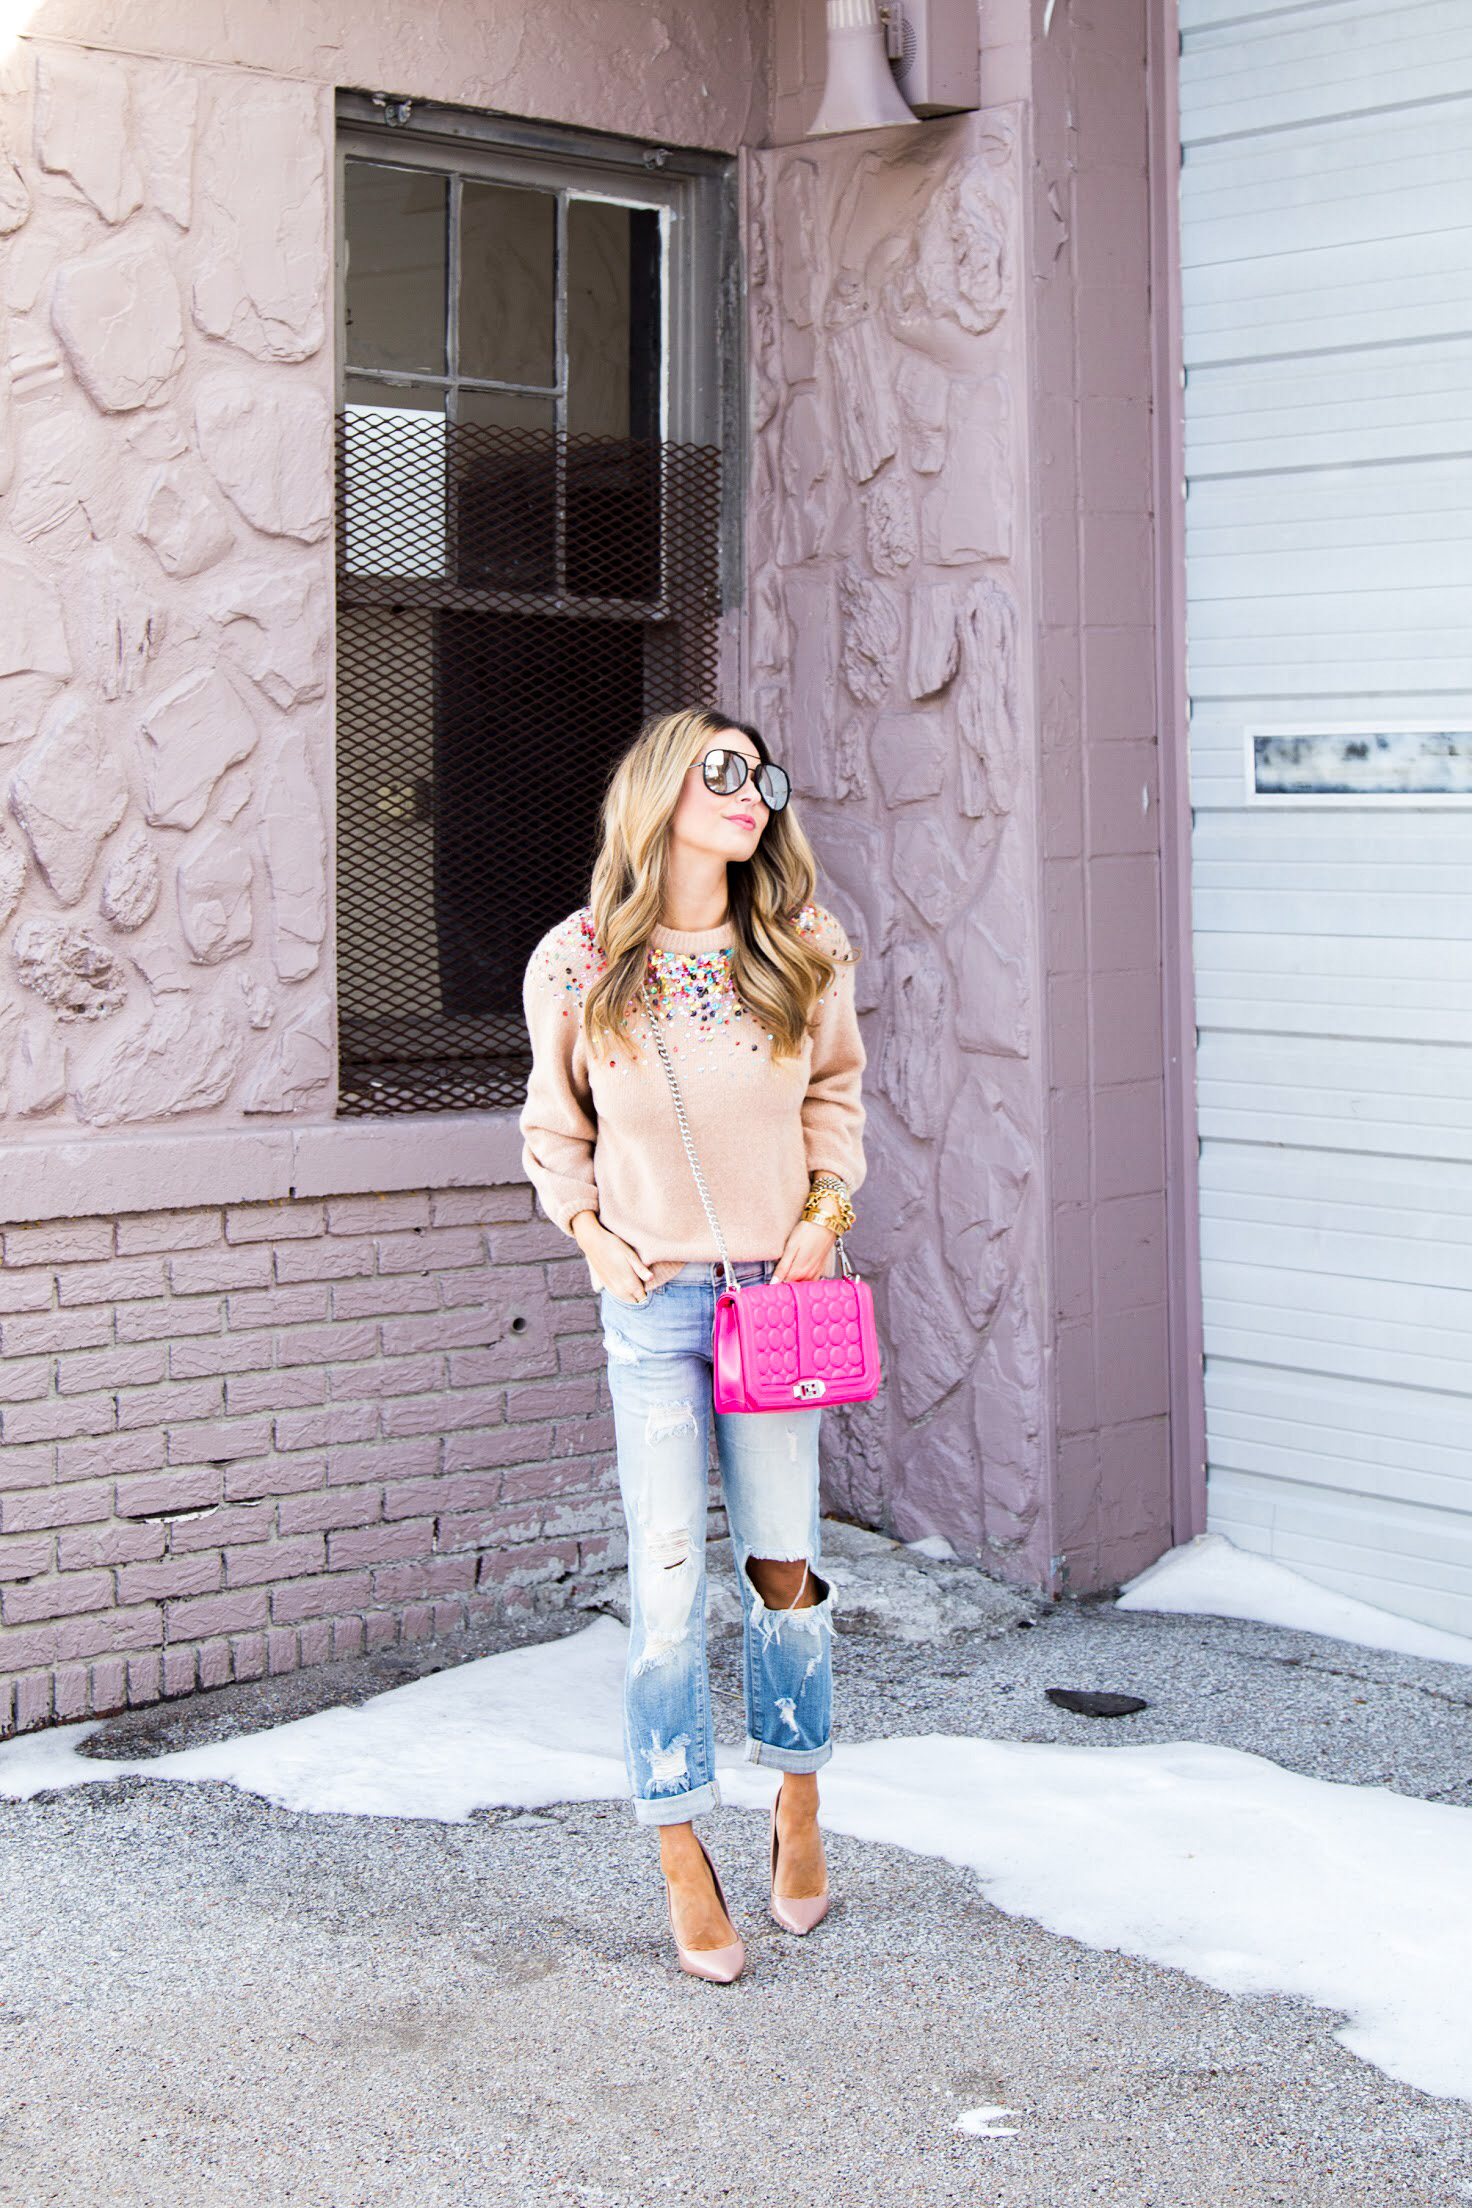 sparkle SheIn sweater, pink cross body bag, Quay sunglasses